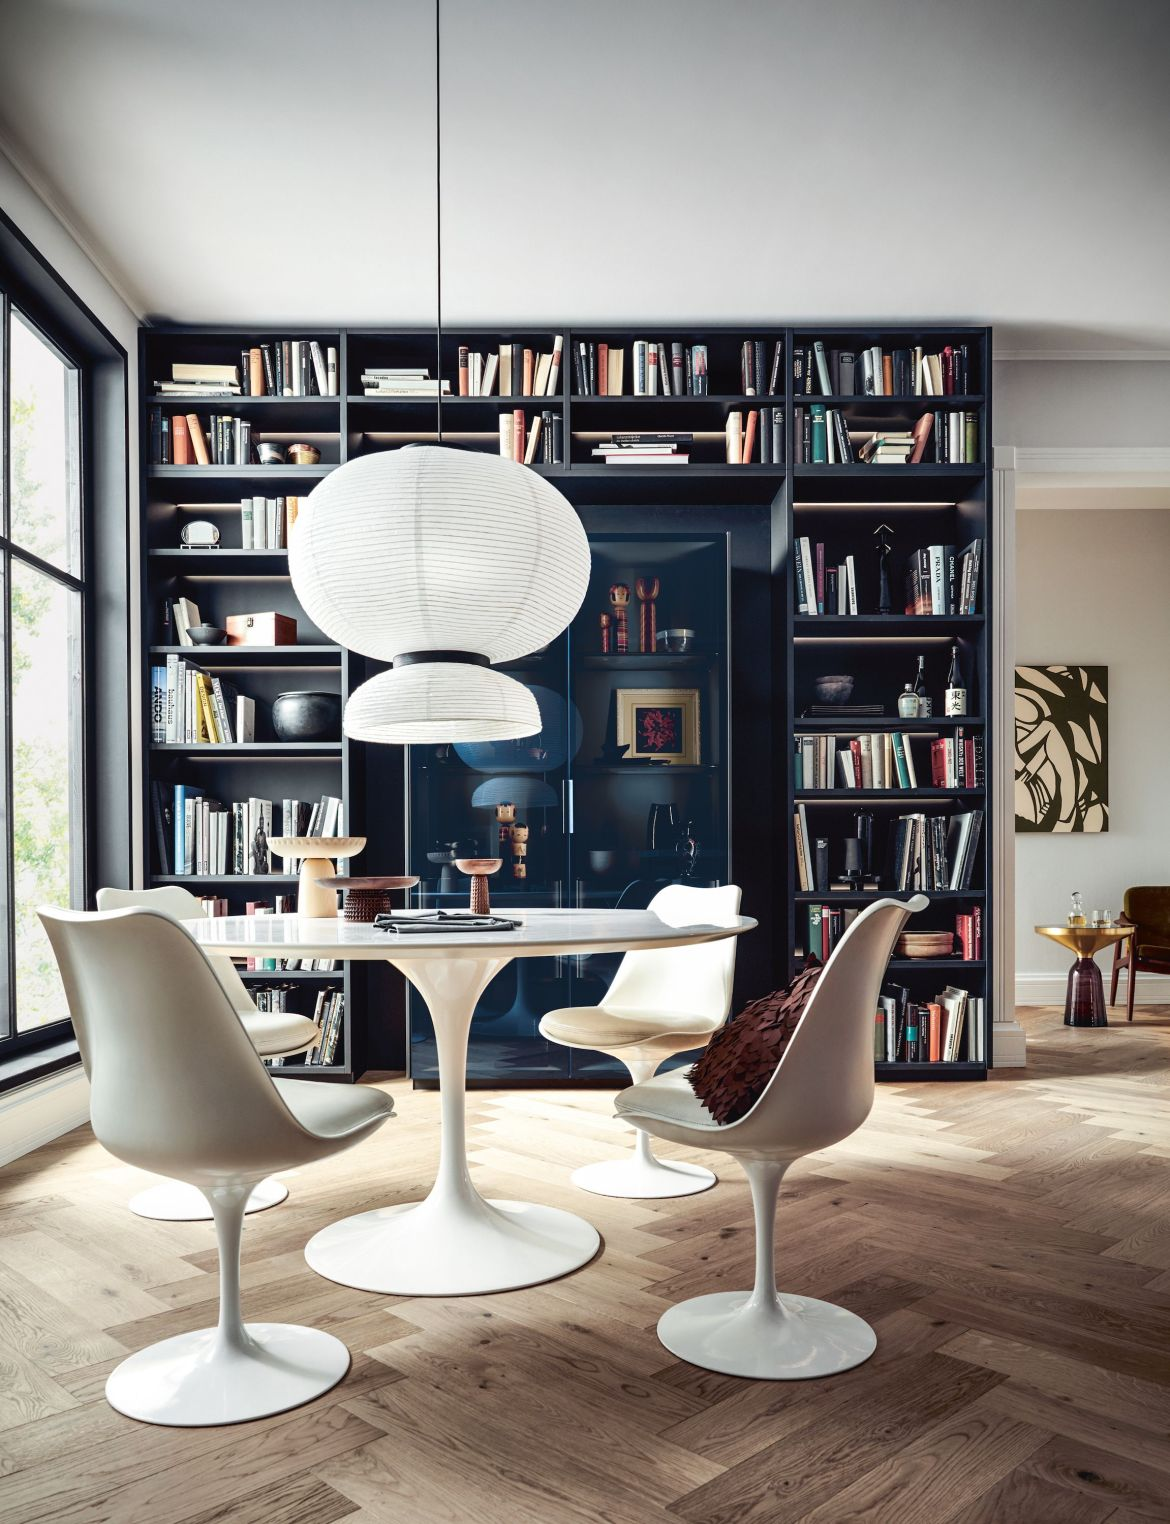 library alcove idea, inhouse inspired room design  next125